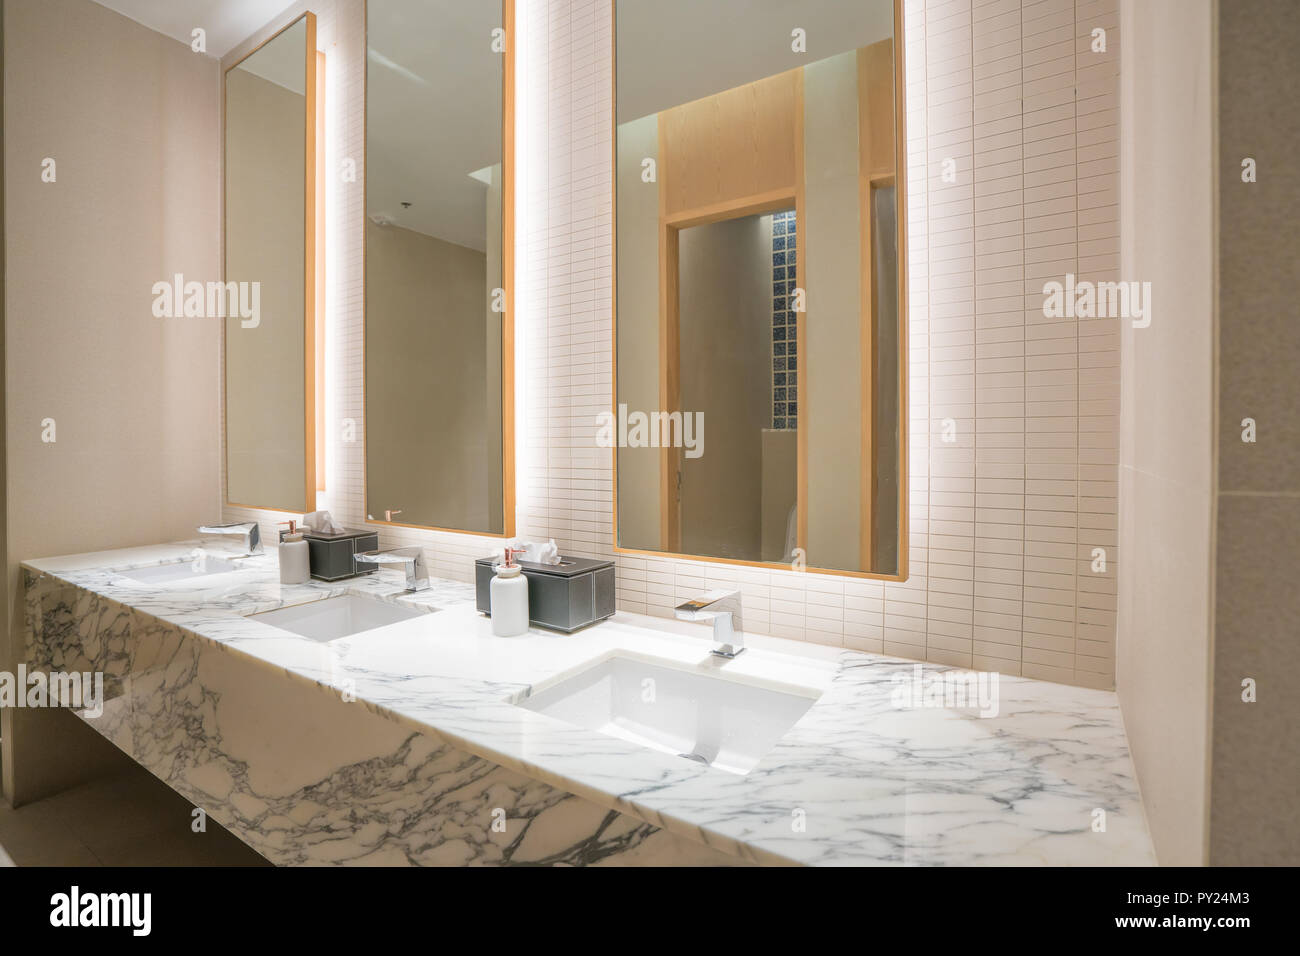 Design Interieur Hotel Interior Of Bathroom With Washbasin Faucet And Black Towel In Hotel